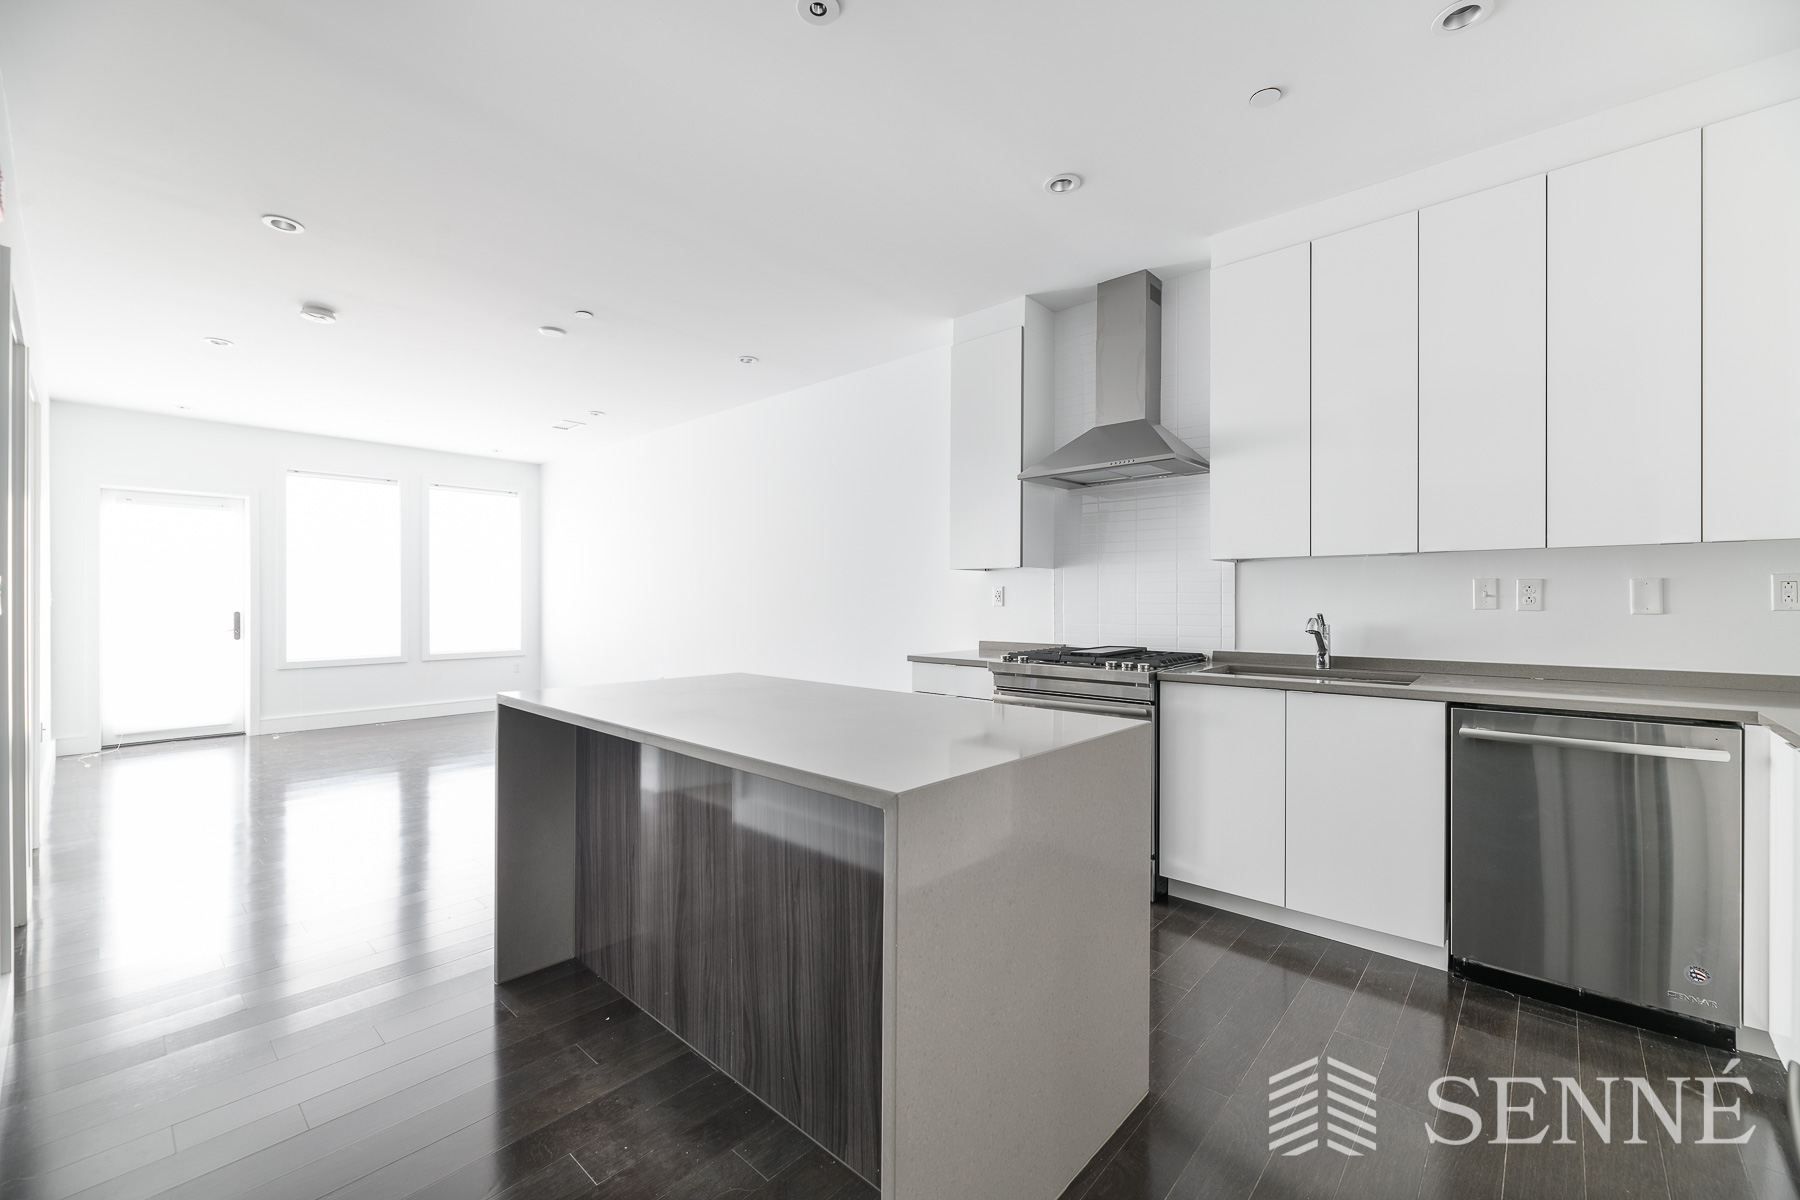 1.5 Beds, 1 Bath apartment in Boston, South Boston for $3,500